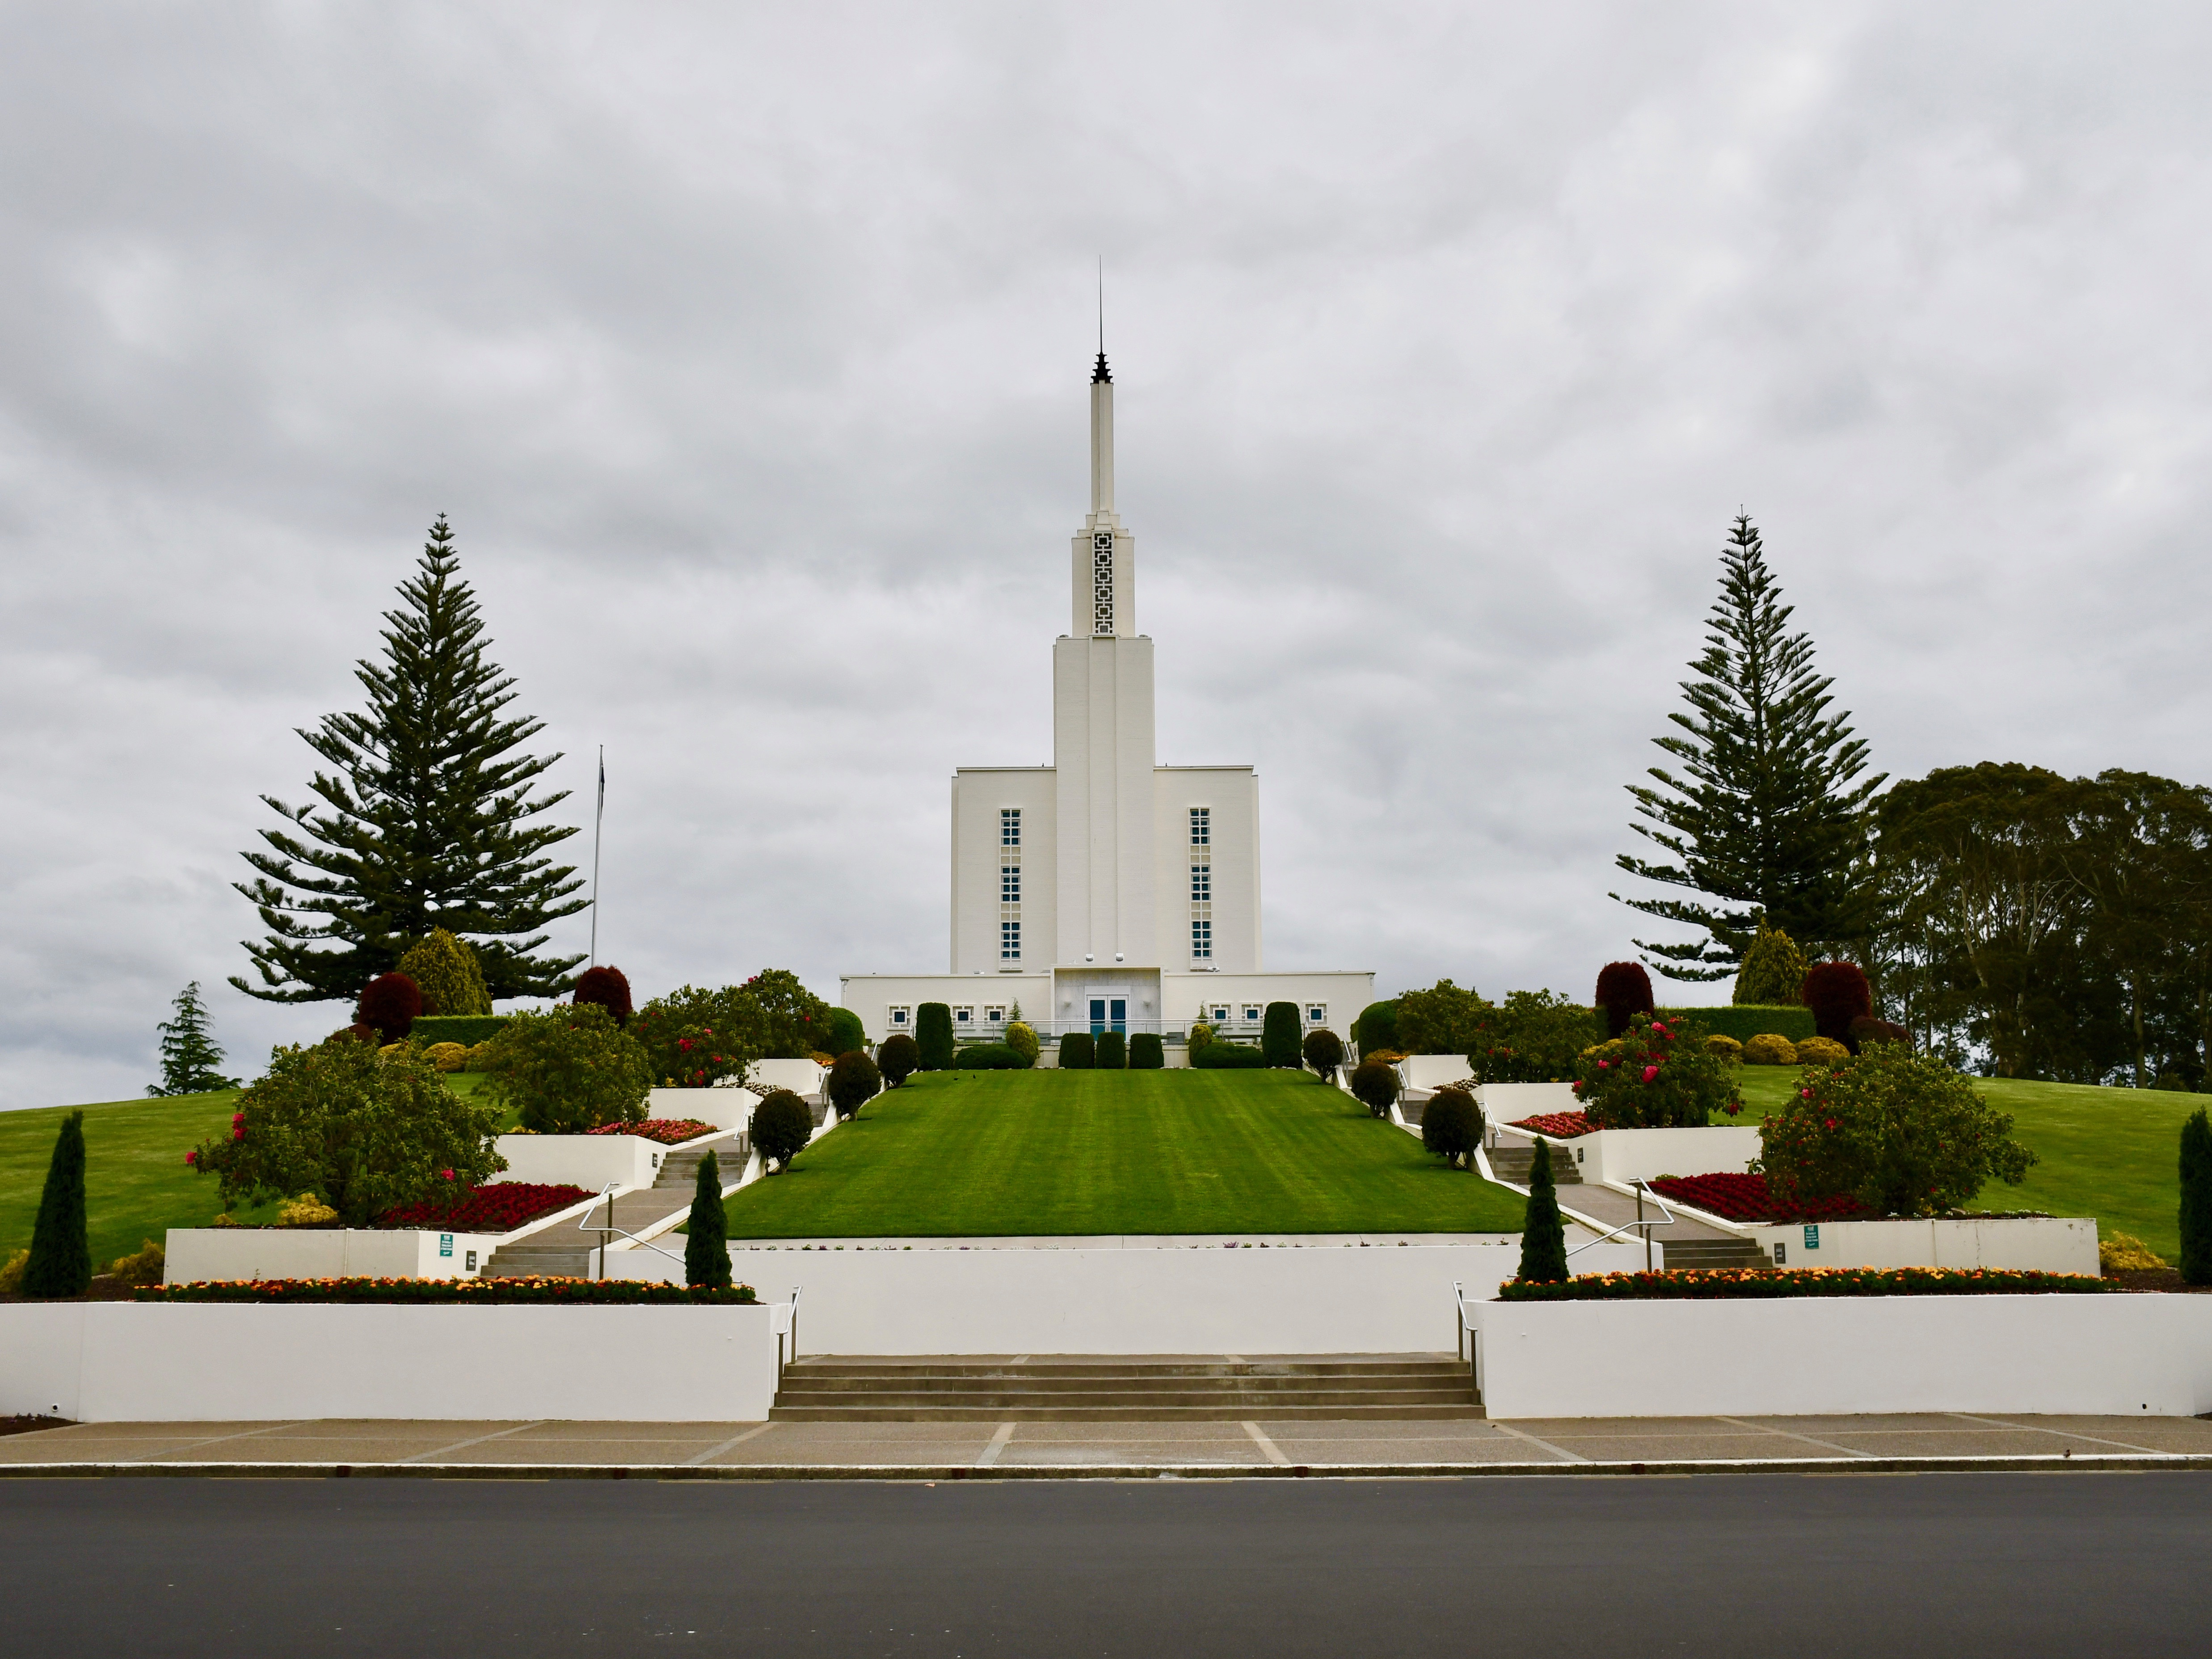 The Hamilton New Zealand LDS Temple on Nov. 2.